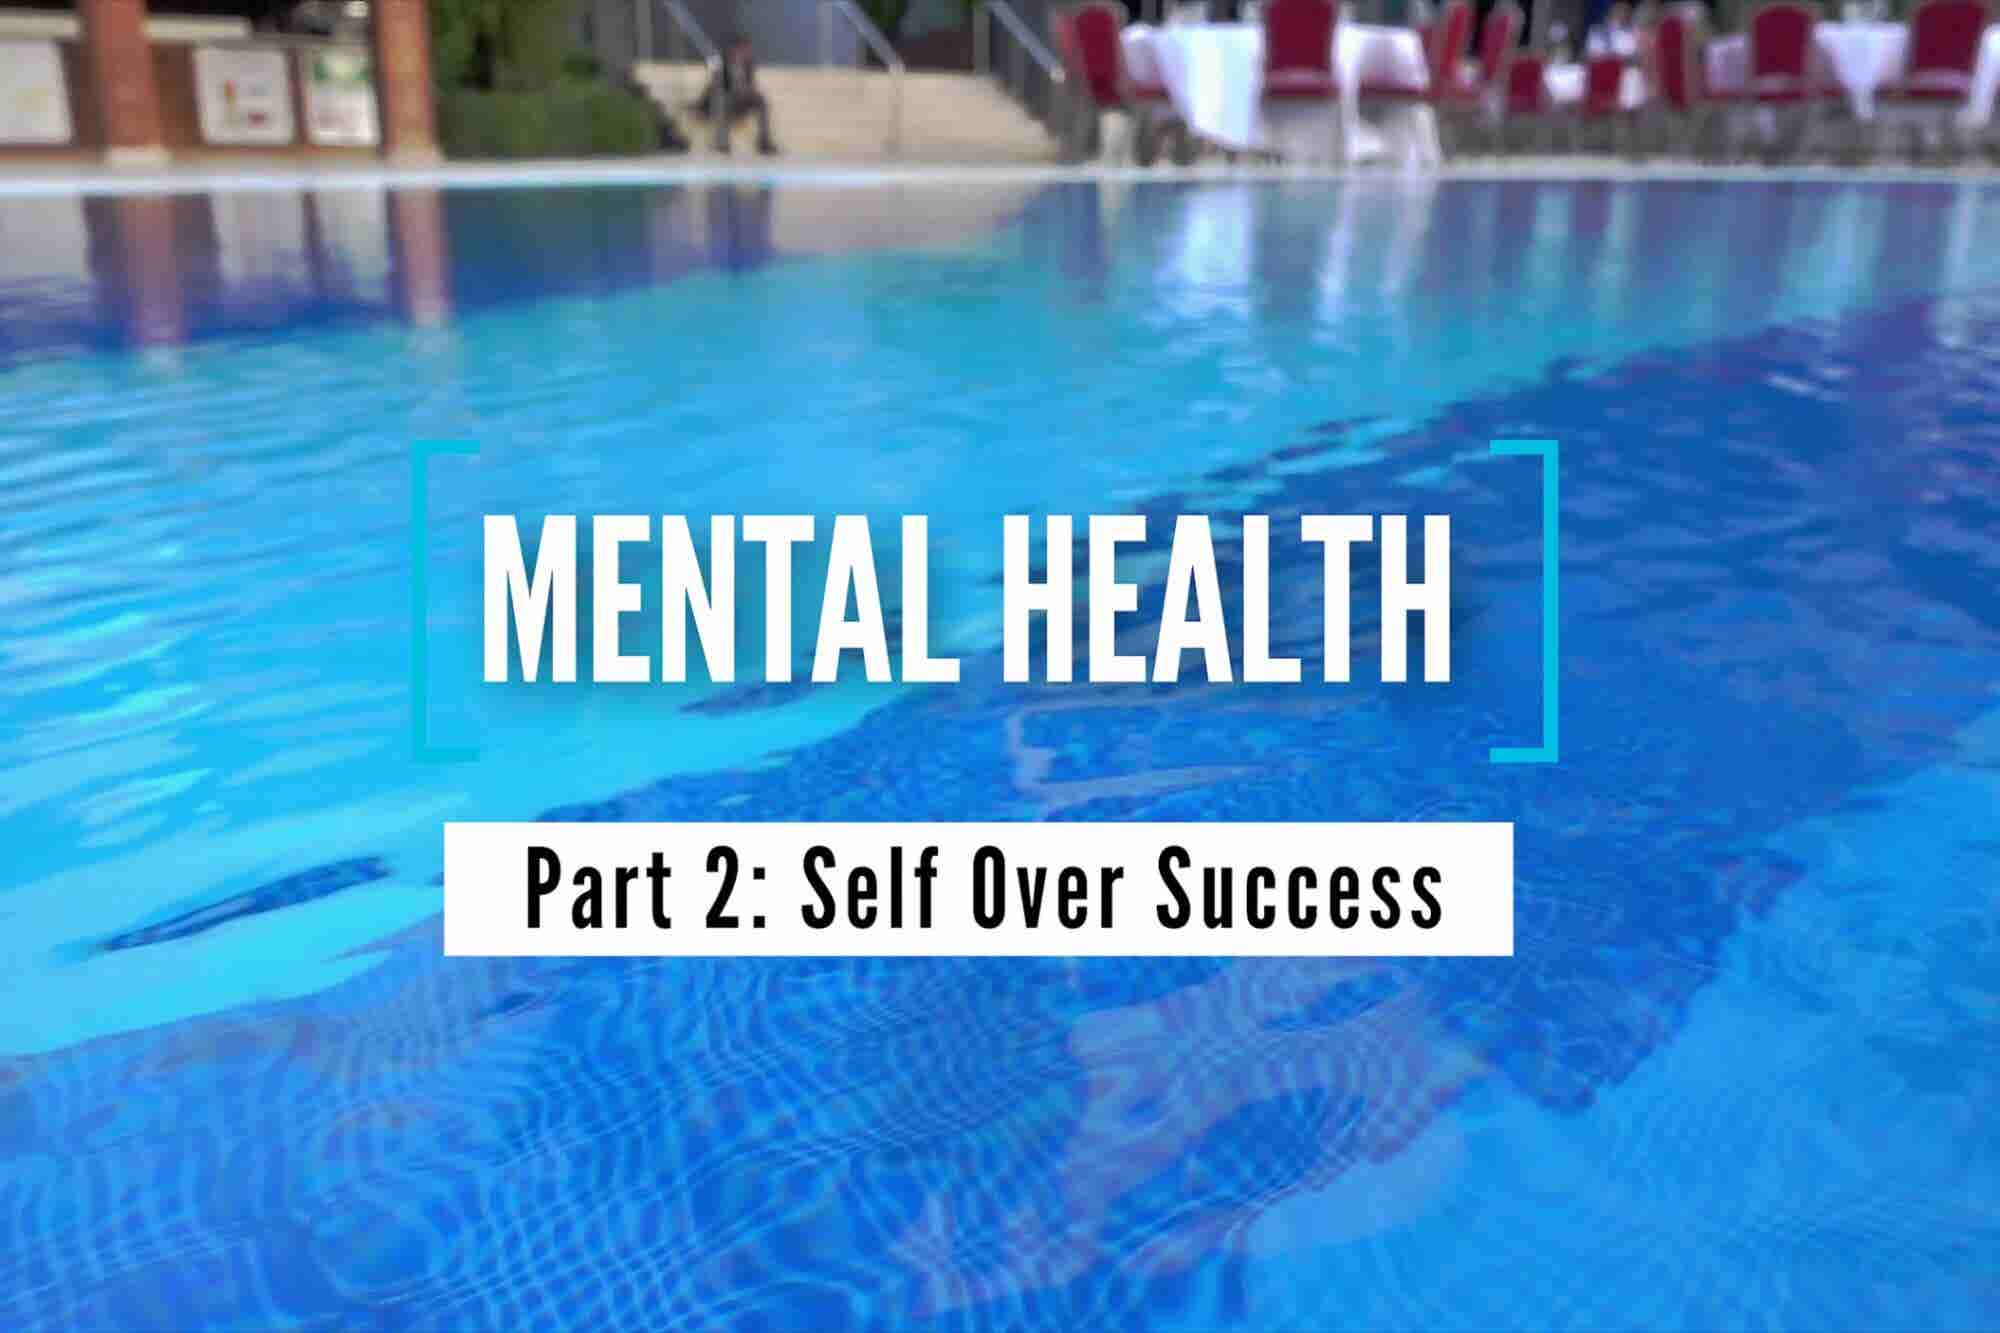 Michael Phelps and Other Leaders on Finding Happiness: Stop Tying Your Self-Worth to Your Career Success (Video)